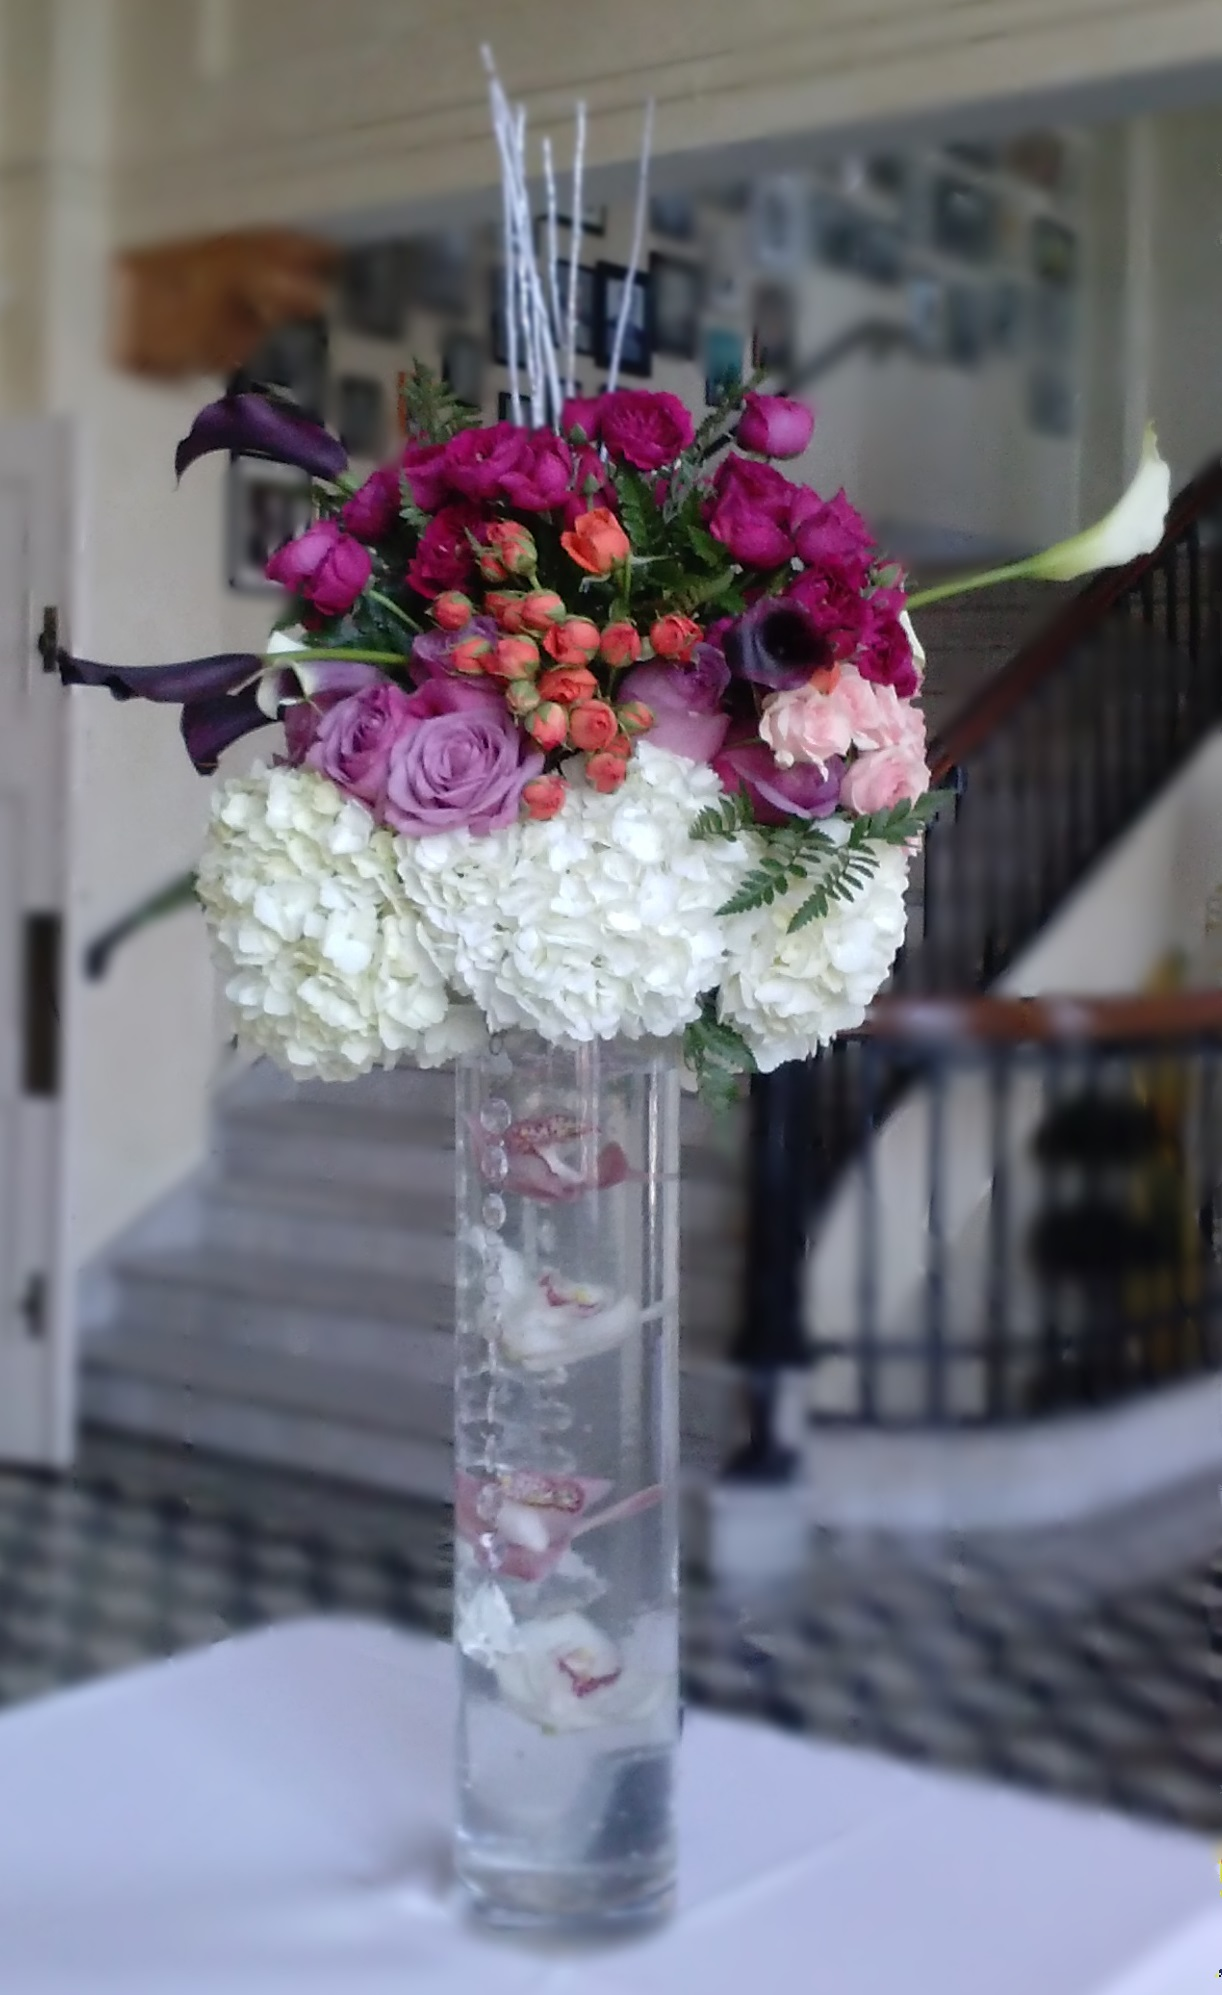 Flower arrangements brides n blooms designs